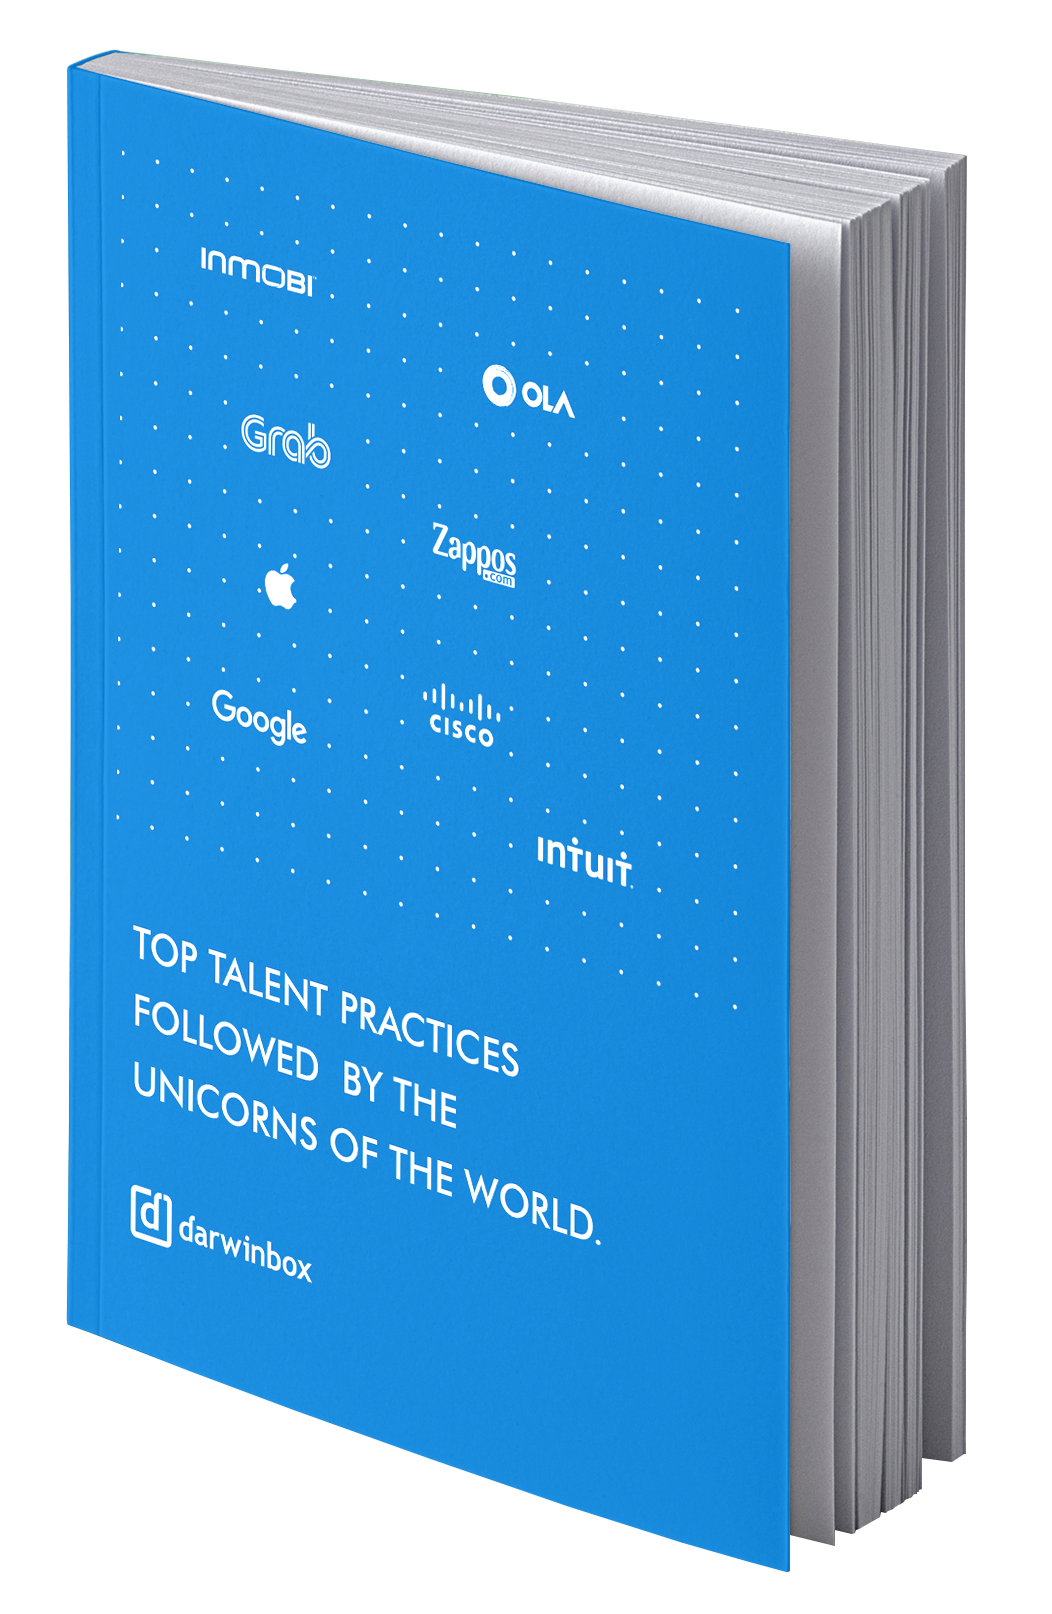 Top Practices By Unicorns_Ebook_Mockup2